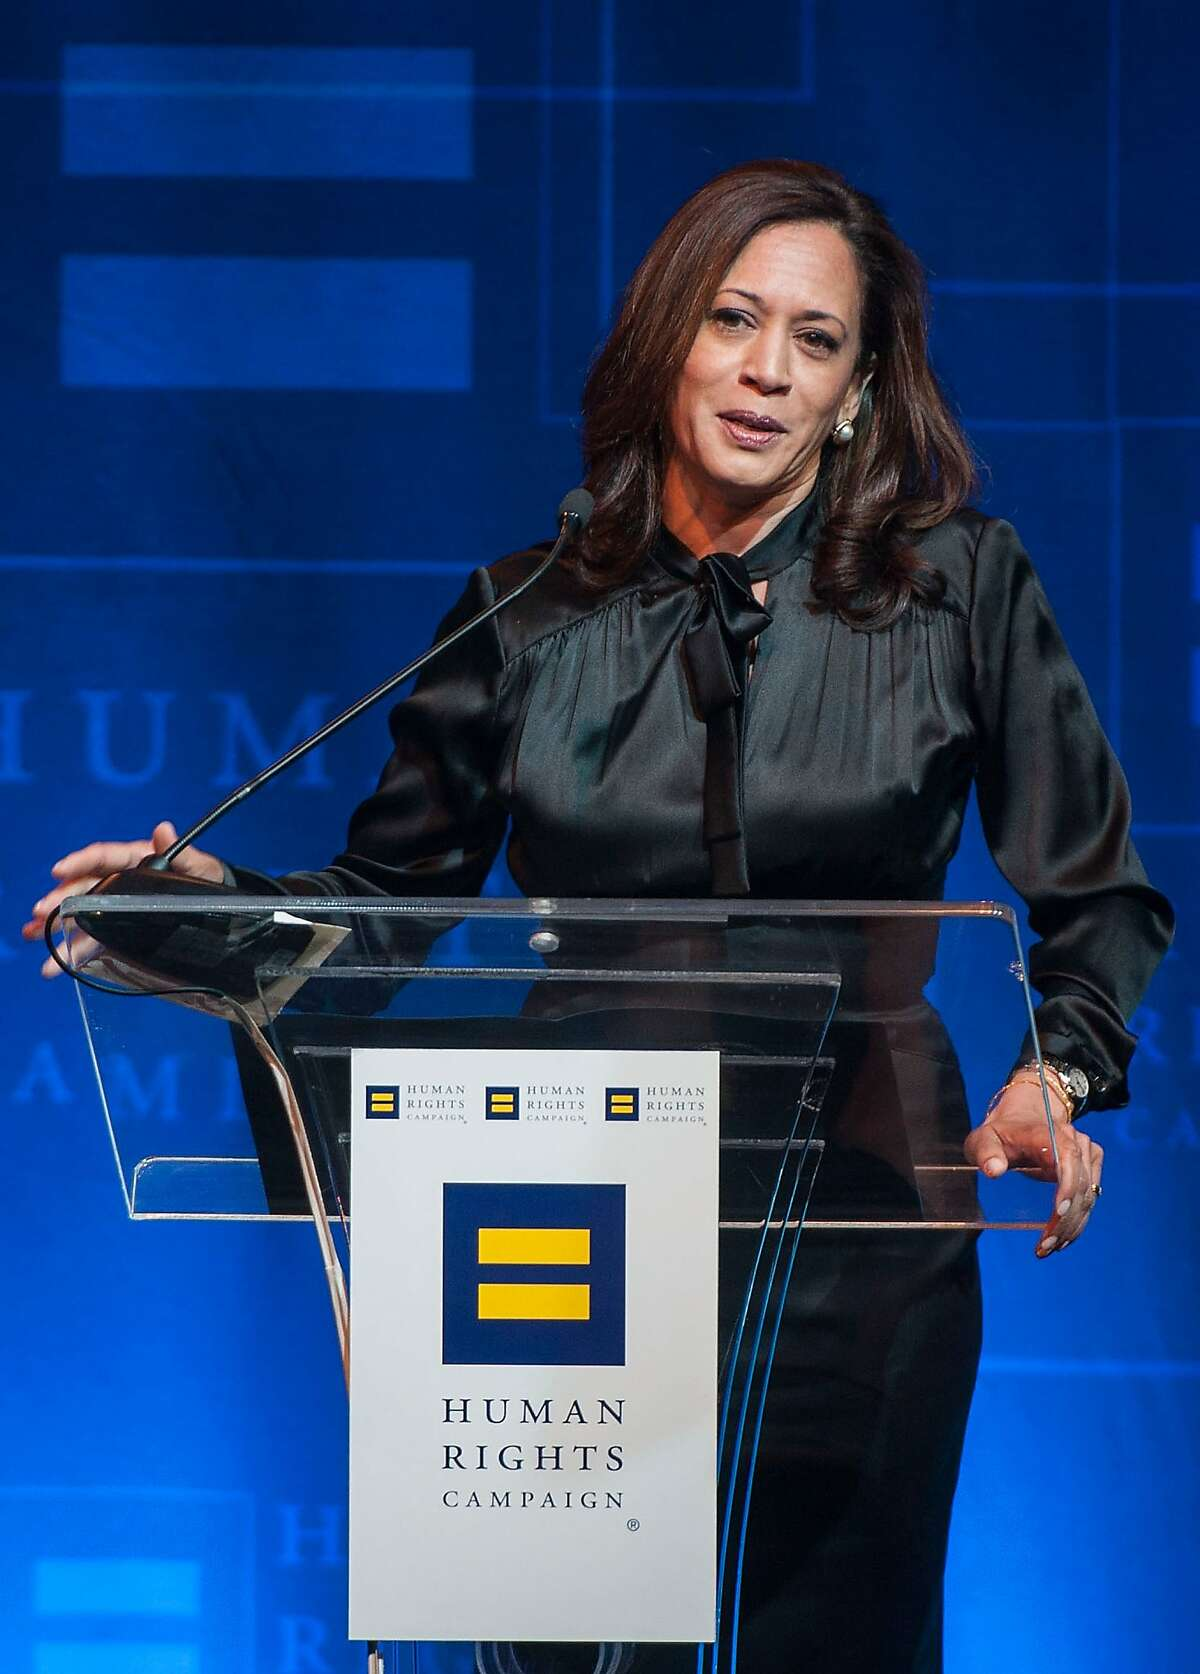 LOS ANGELES, CA - MARCH 22: Kamala Harris speaks during the Human Rights Campaign Los Angeles Gala Dinner at JW Marriott Los Angeles at L.A. LIVE on March 22, 2014 in Los Angeles, California. (Photo by Valerie Macon/Getty Images)